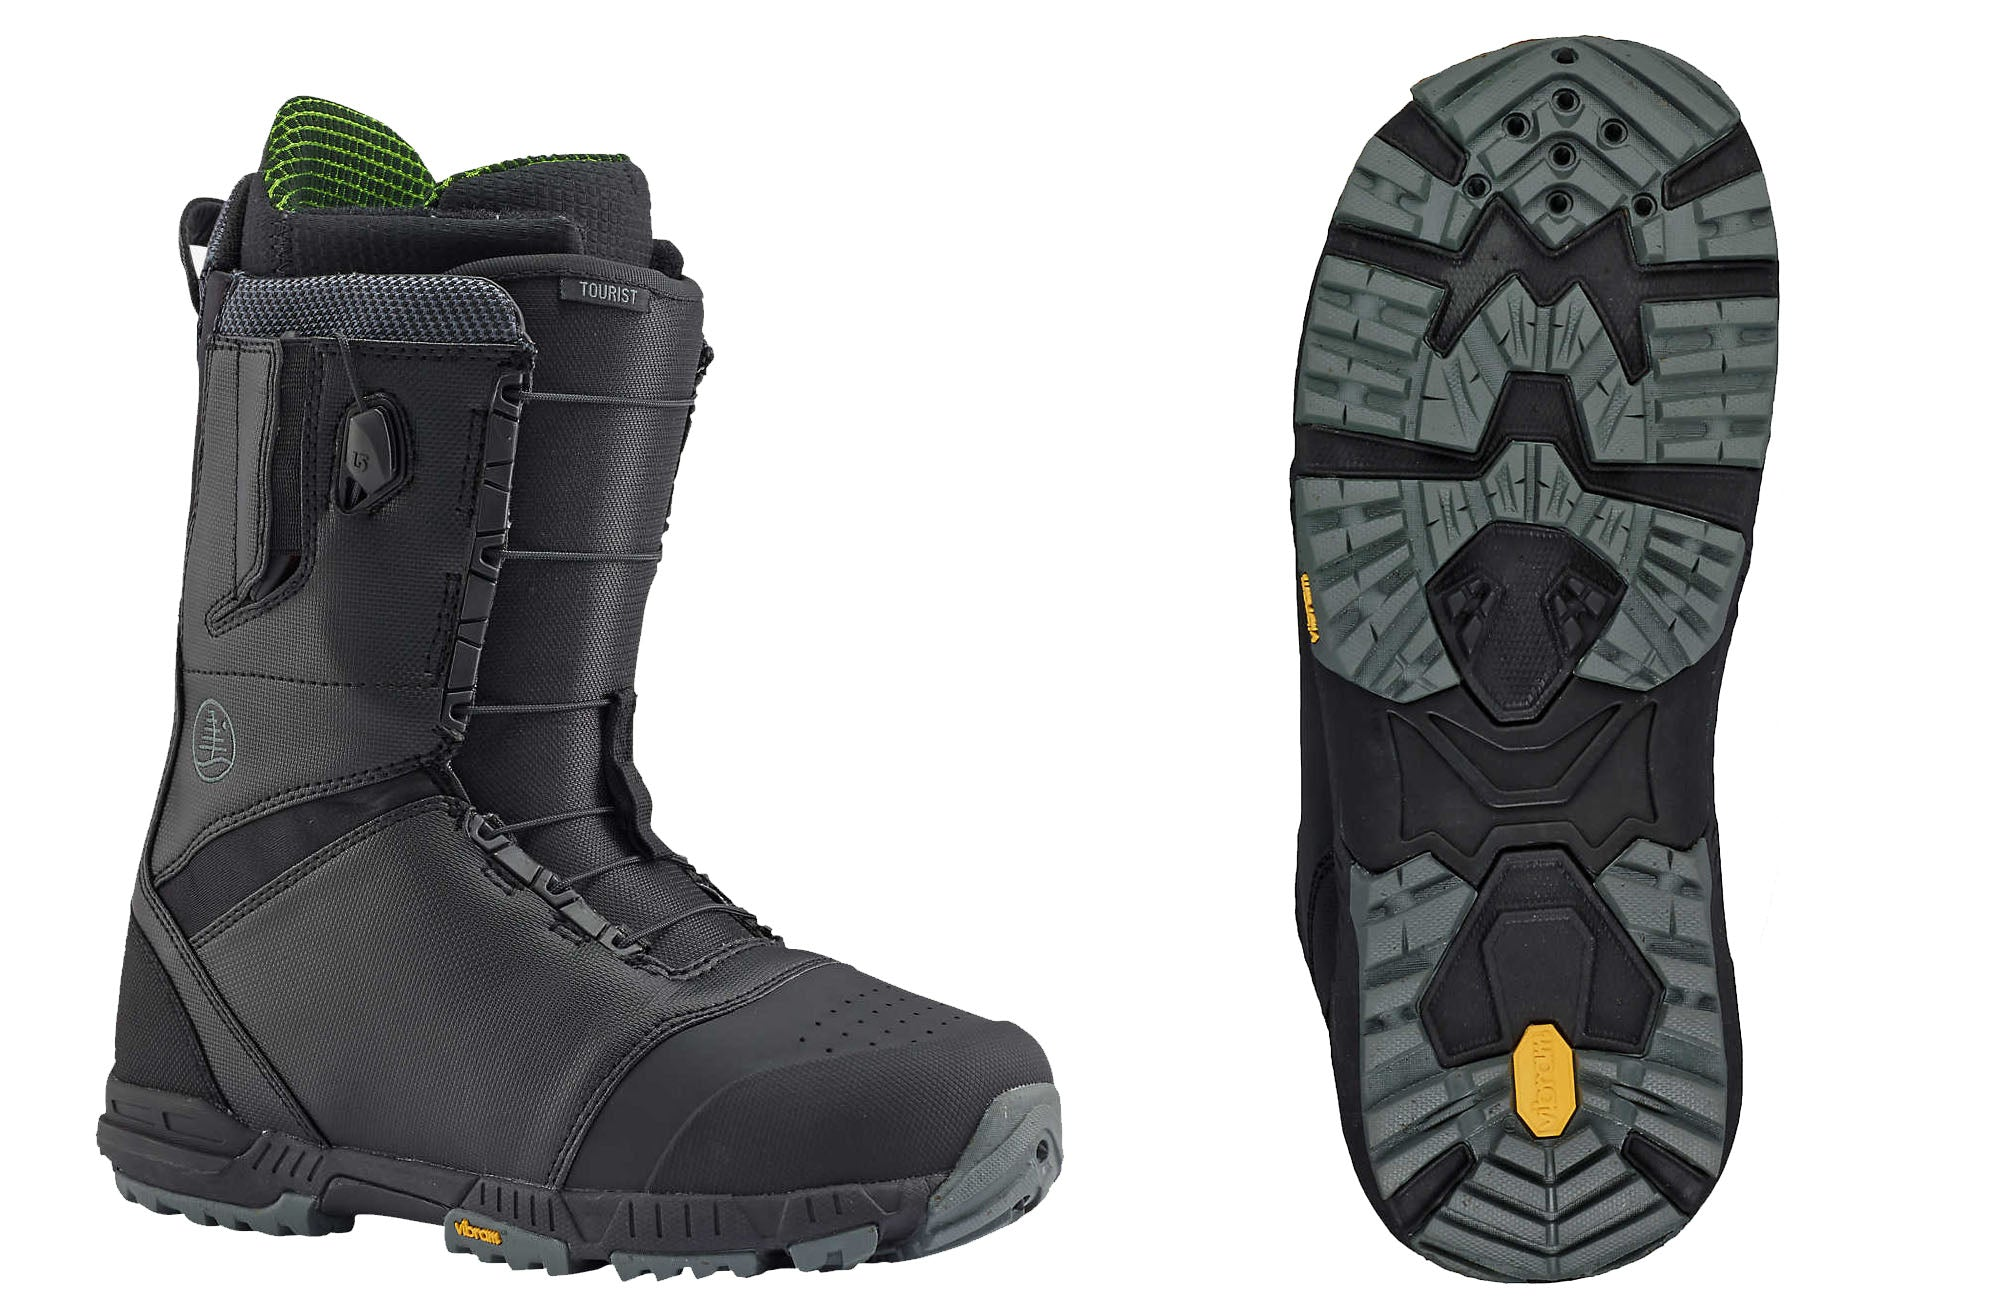 Burton Tourist - Splitboarding Boots at Tribute Boardshop